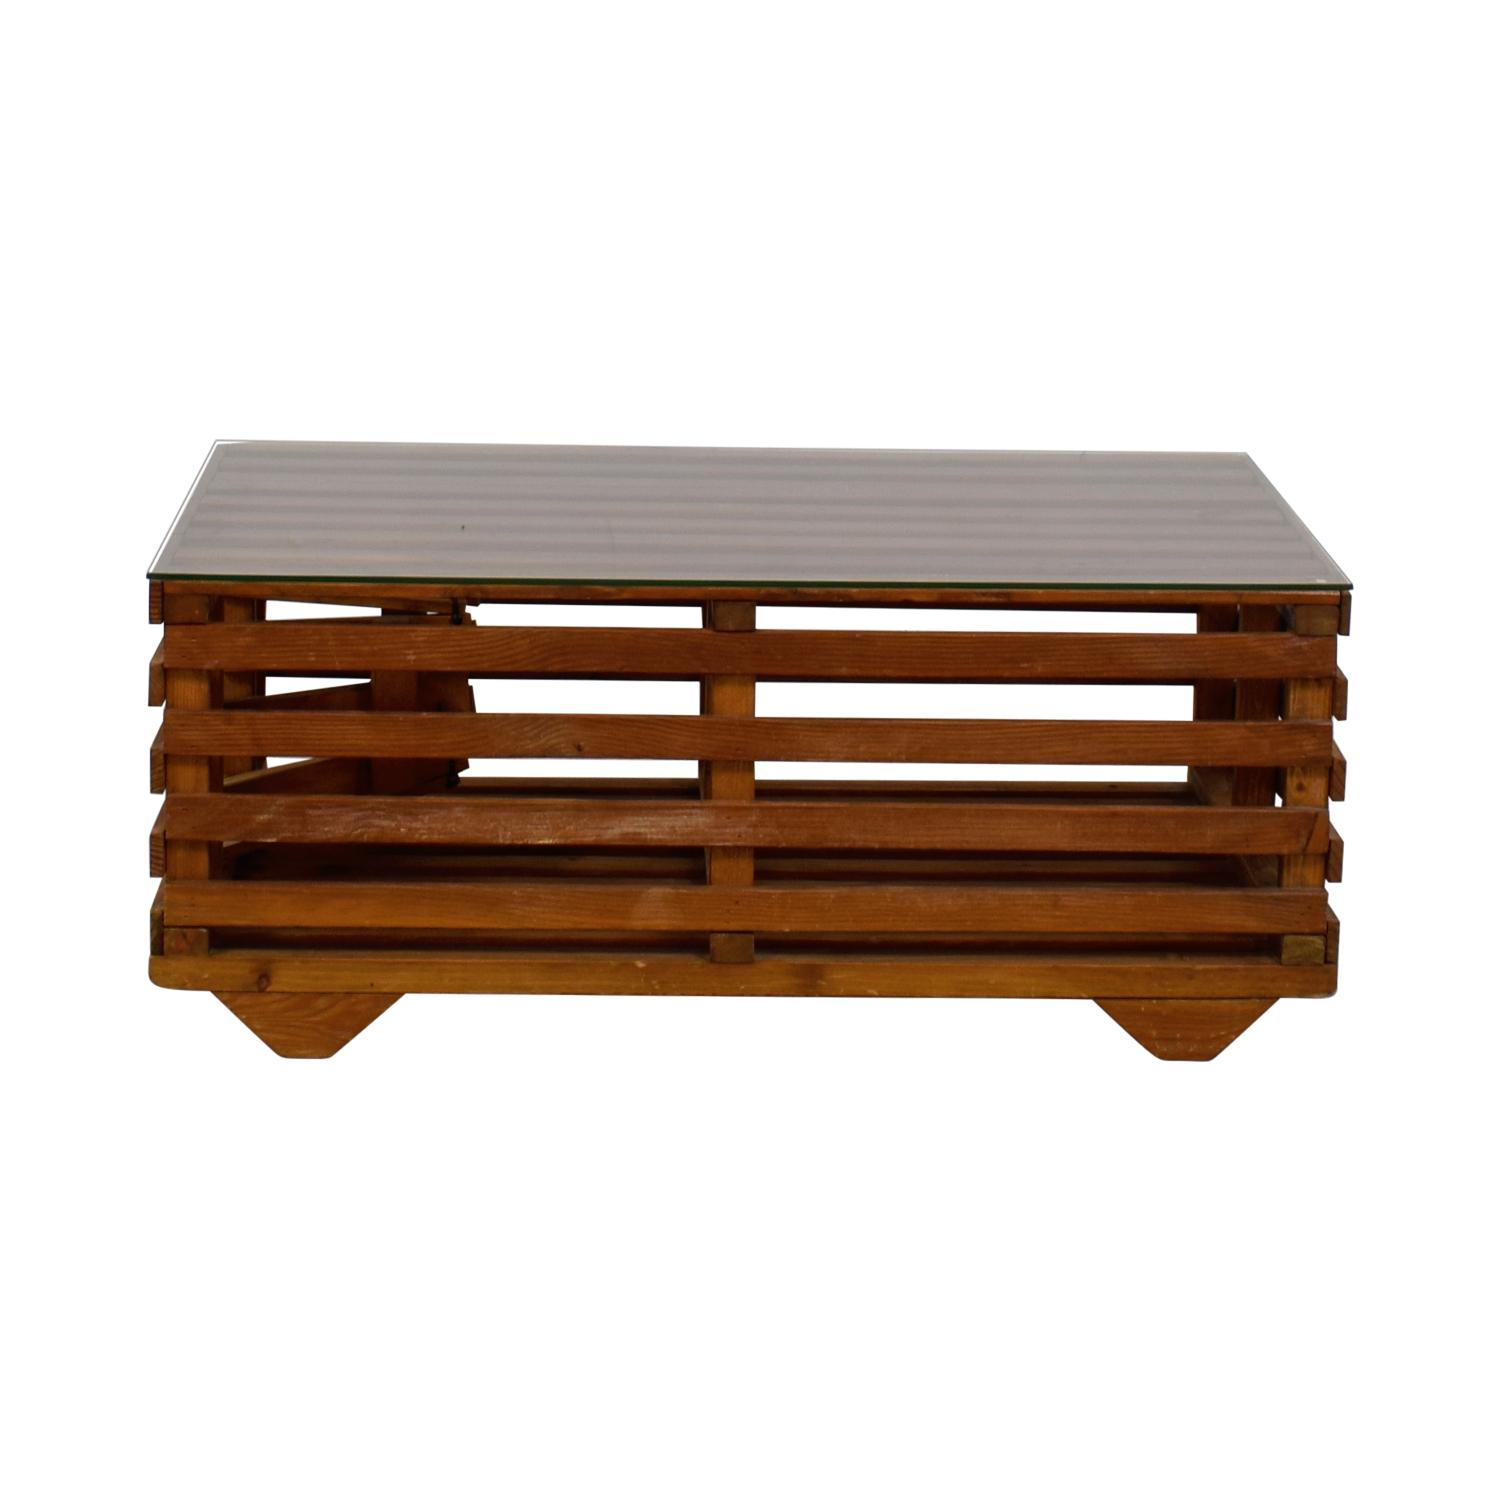 40 OFF Wooden Lobster Trap Coffee Table with Glass Top Tables